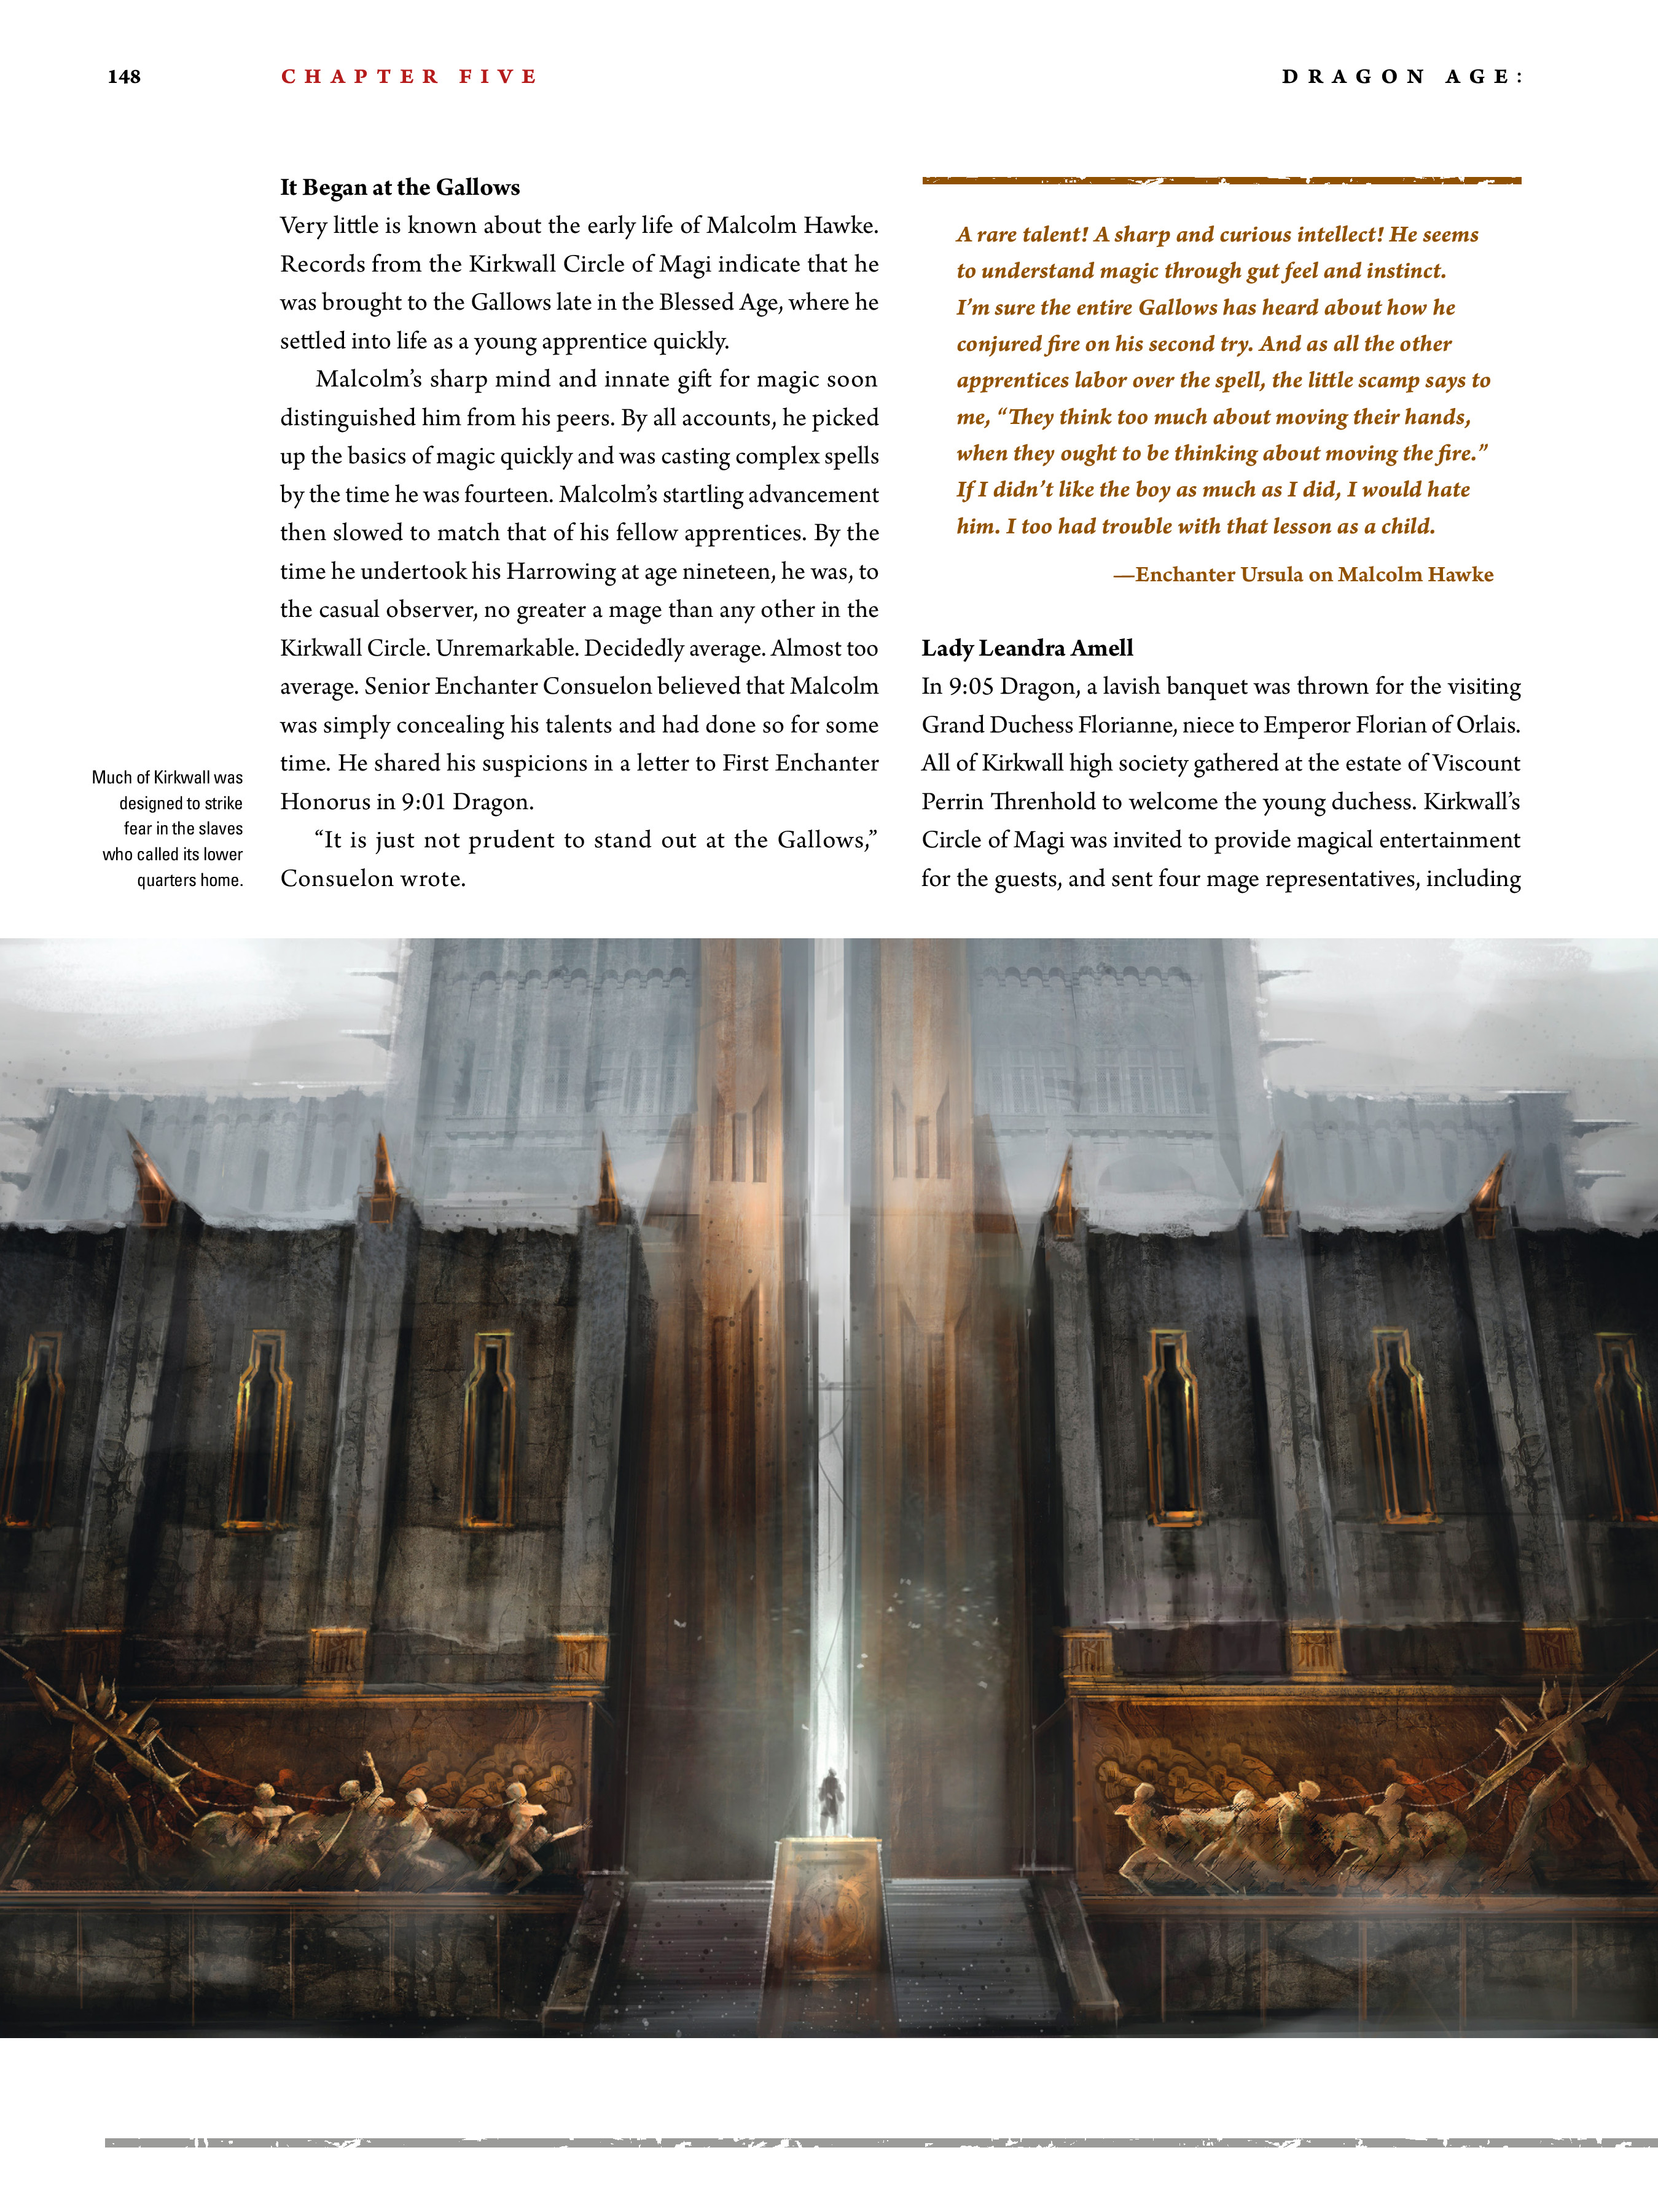 Read online Dragon Age: The World of Thedas comic -  Issue # TPB 2 - 144